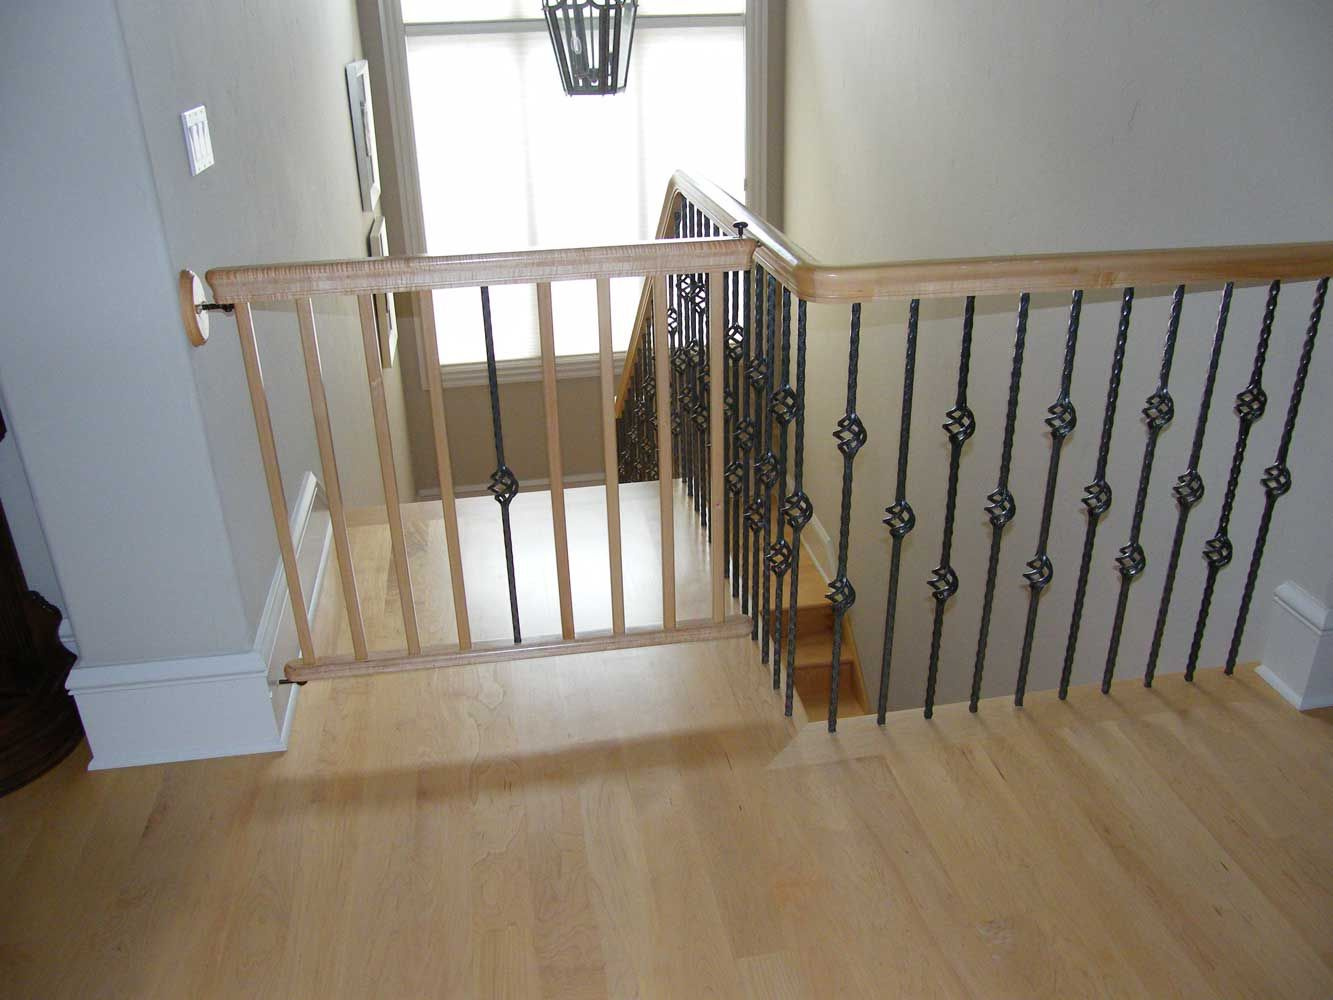 Stair Gate For The Home Stair Company Stair Gate Stairs